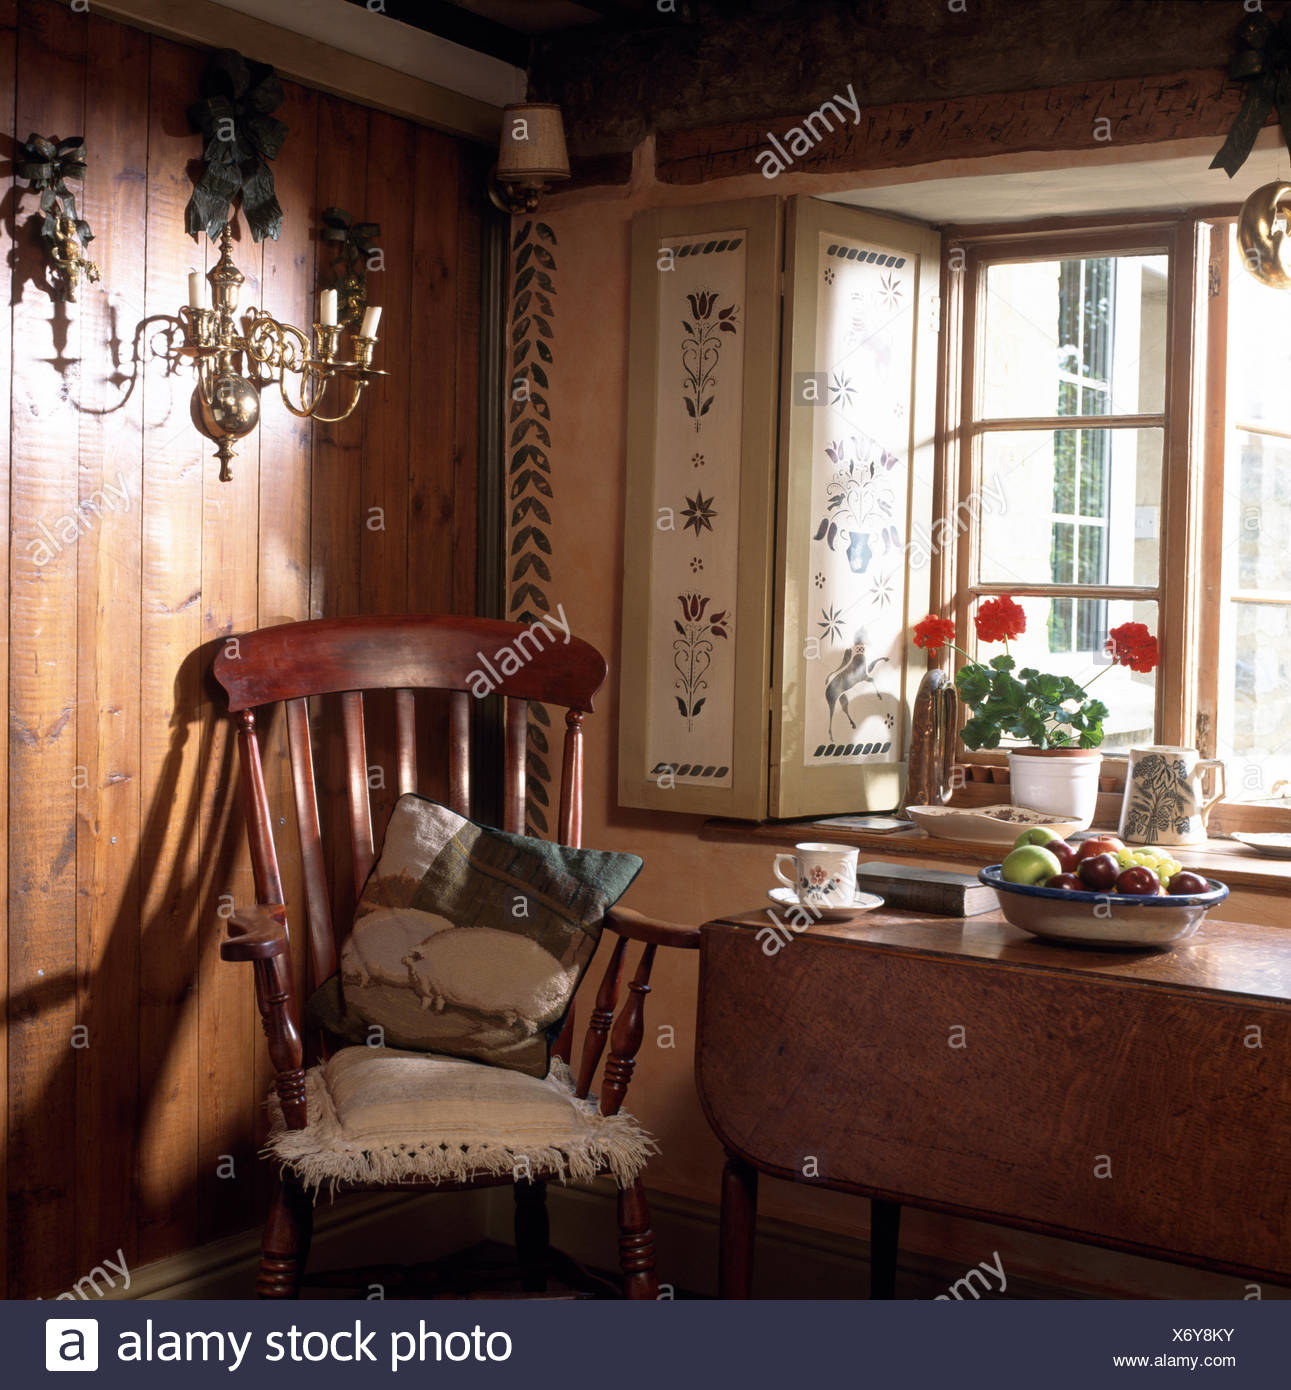 Antique Windsor Chair And Old Table Below Window With